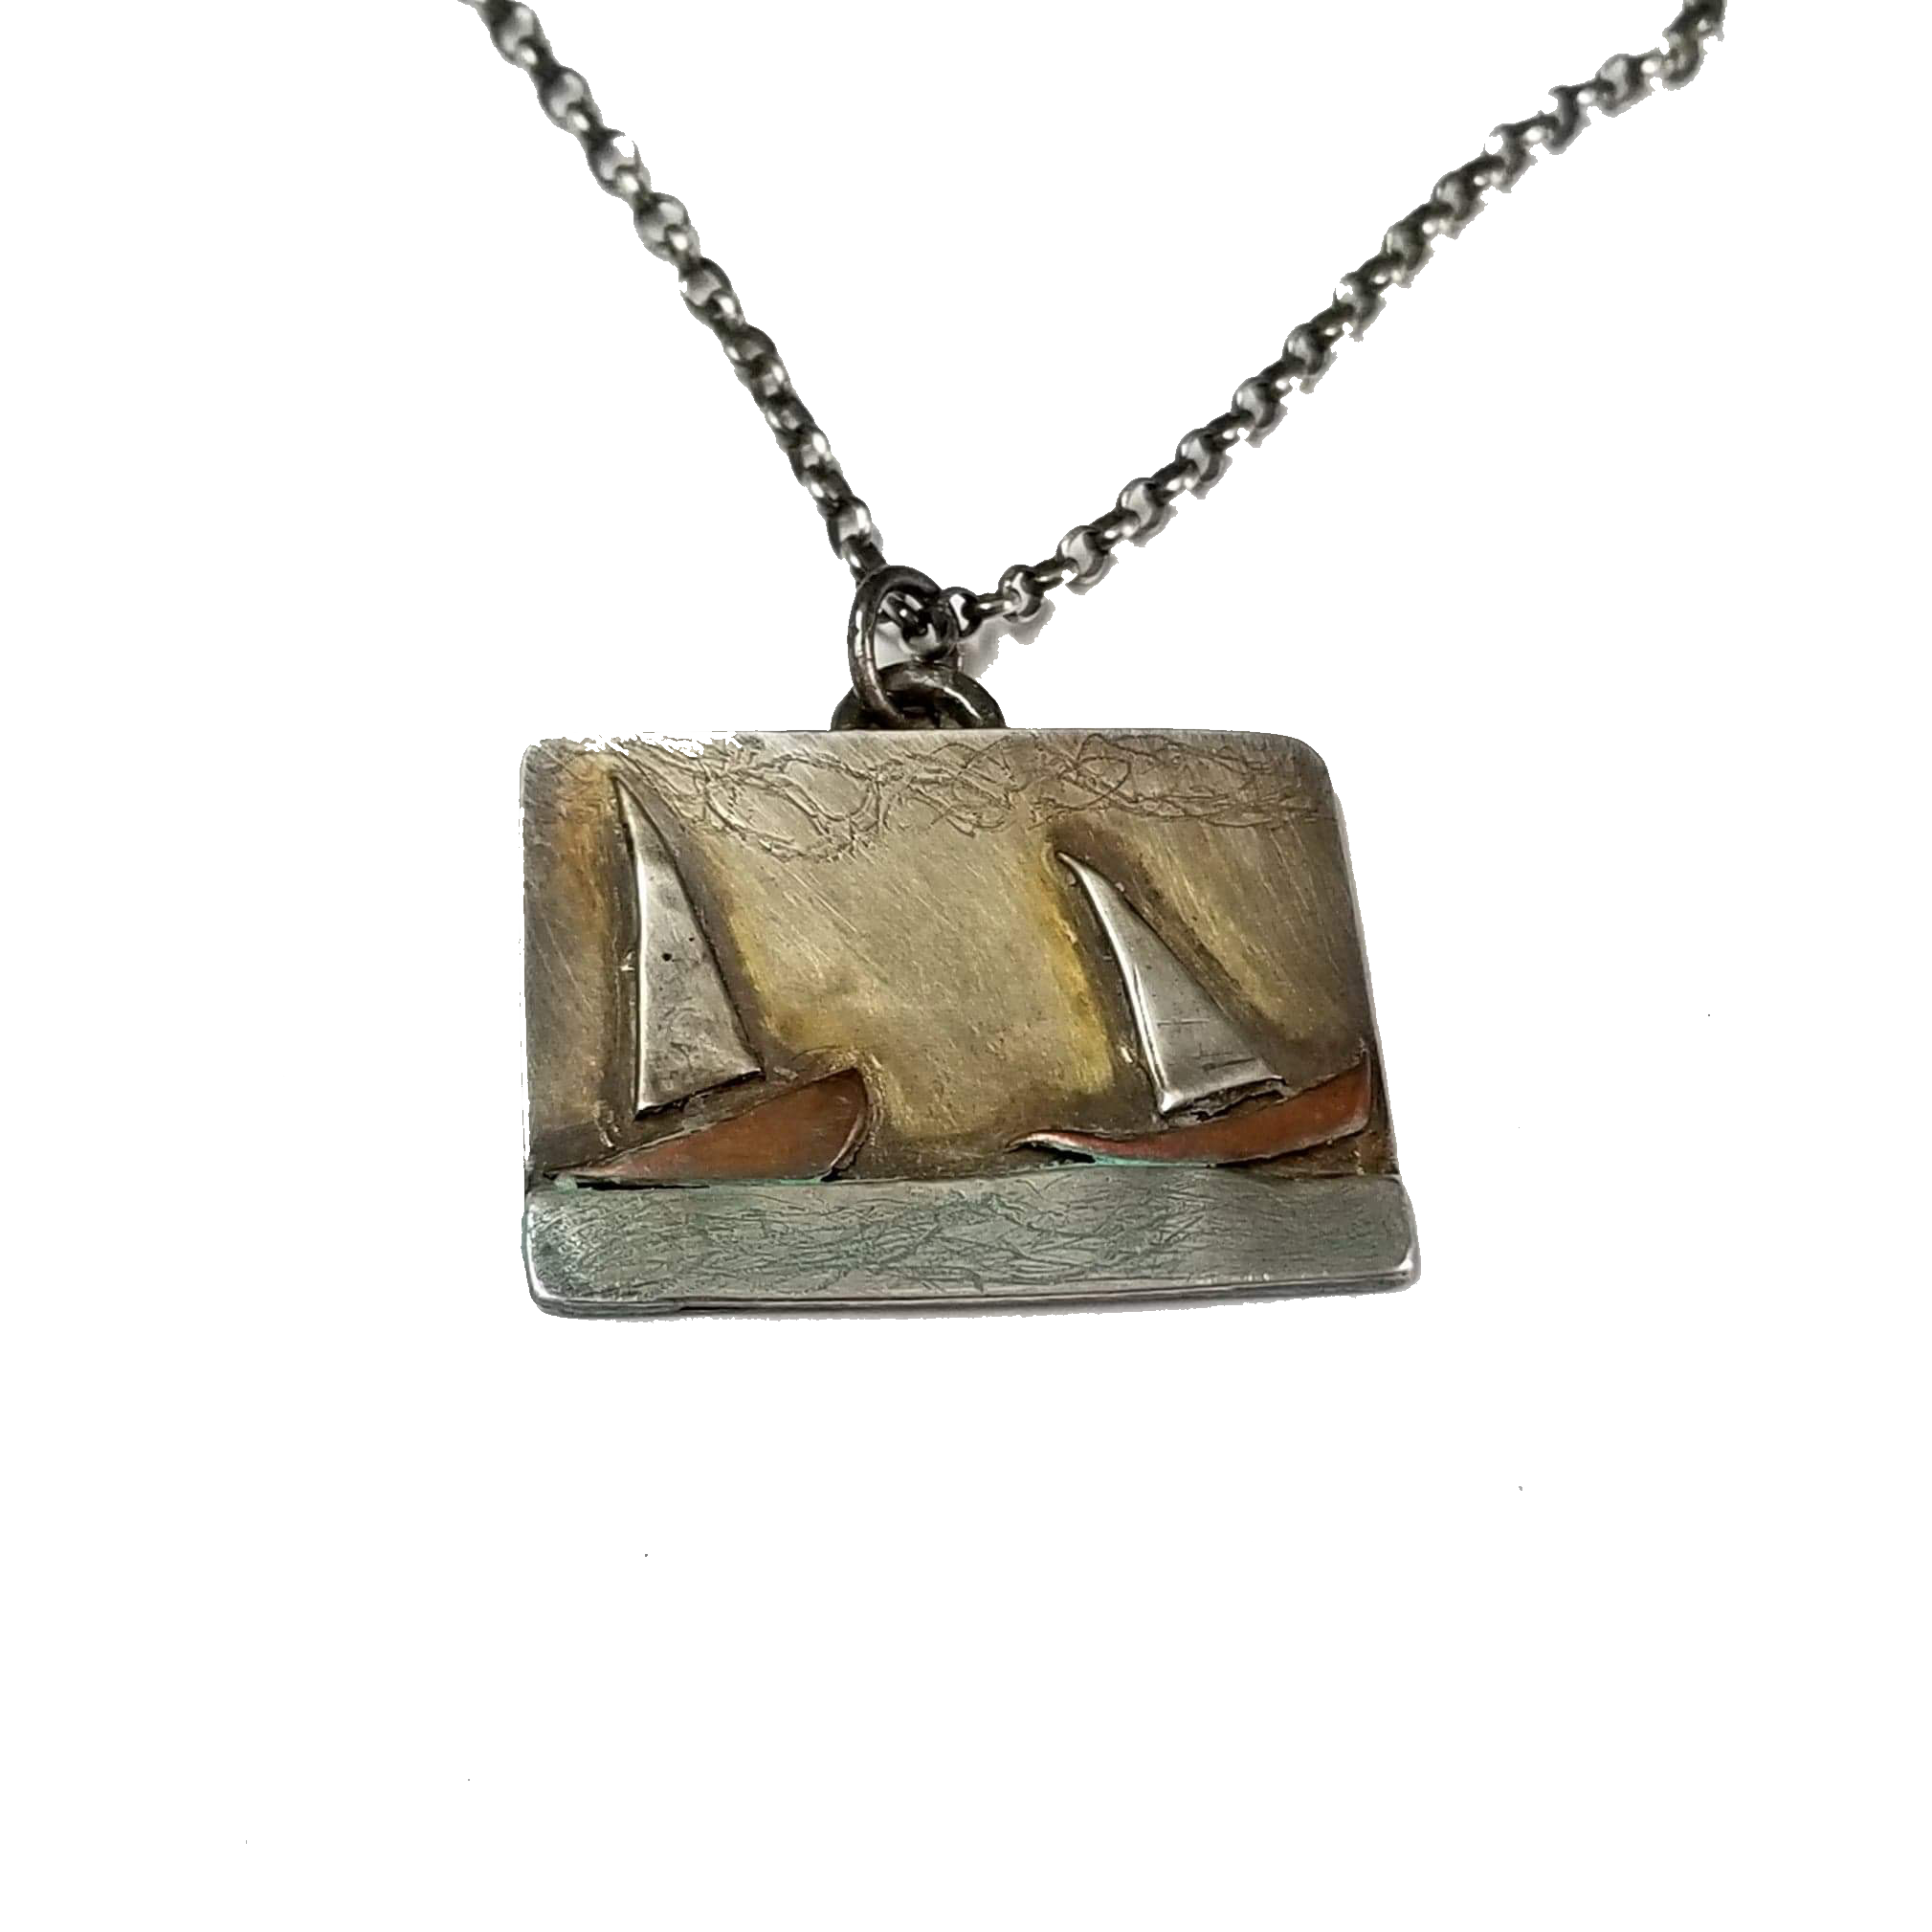 2 sailboats necklace